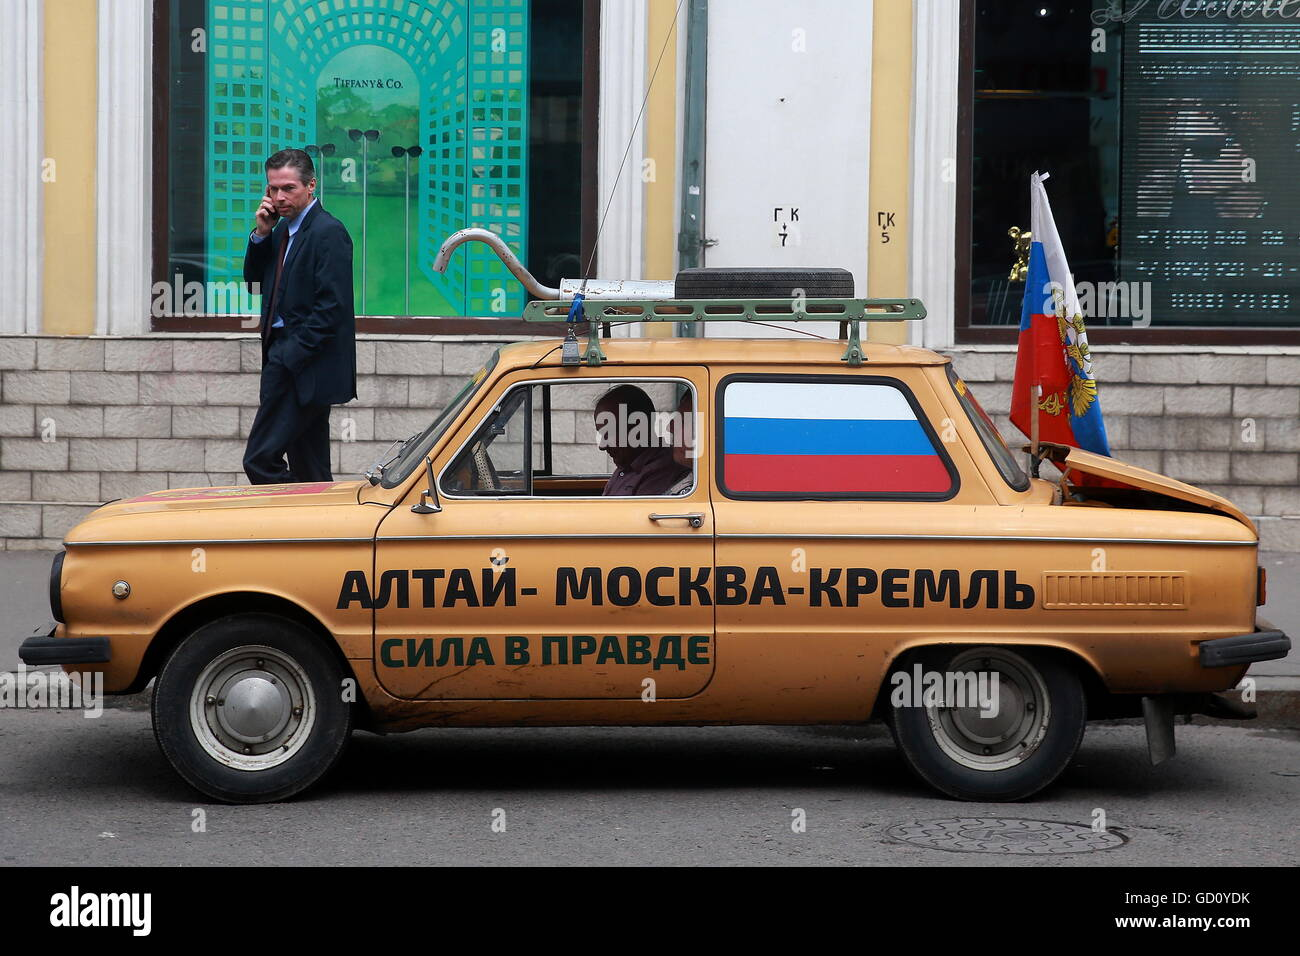 As I rode with Putin in Zaporozhets